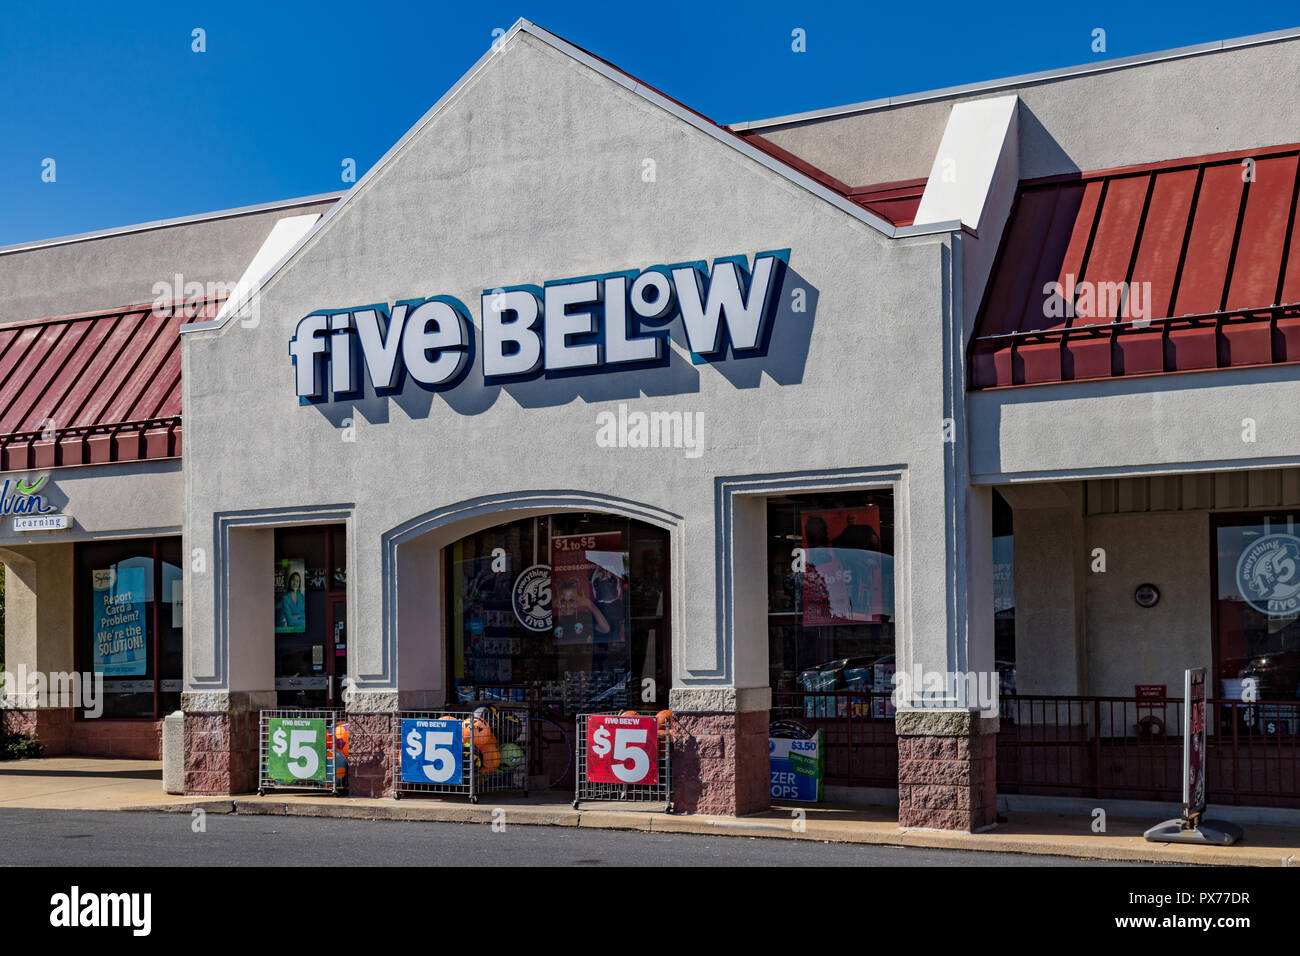 Lancaster Pa Usa October 18 2018 Five Below Is An American Publicly Held Chain Of Discount Stores With Over 600 Locations That Sells Products T